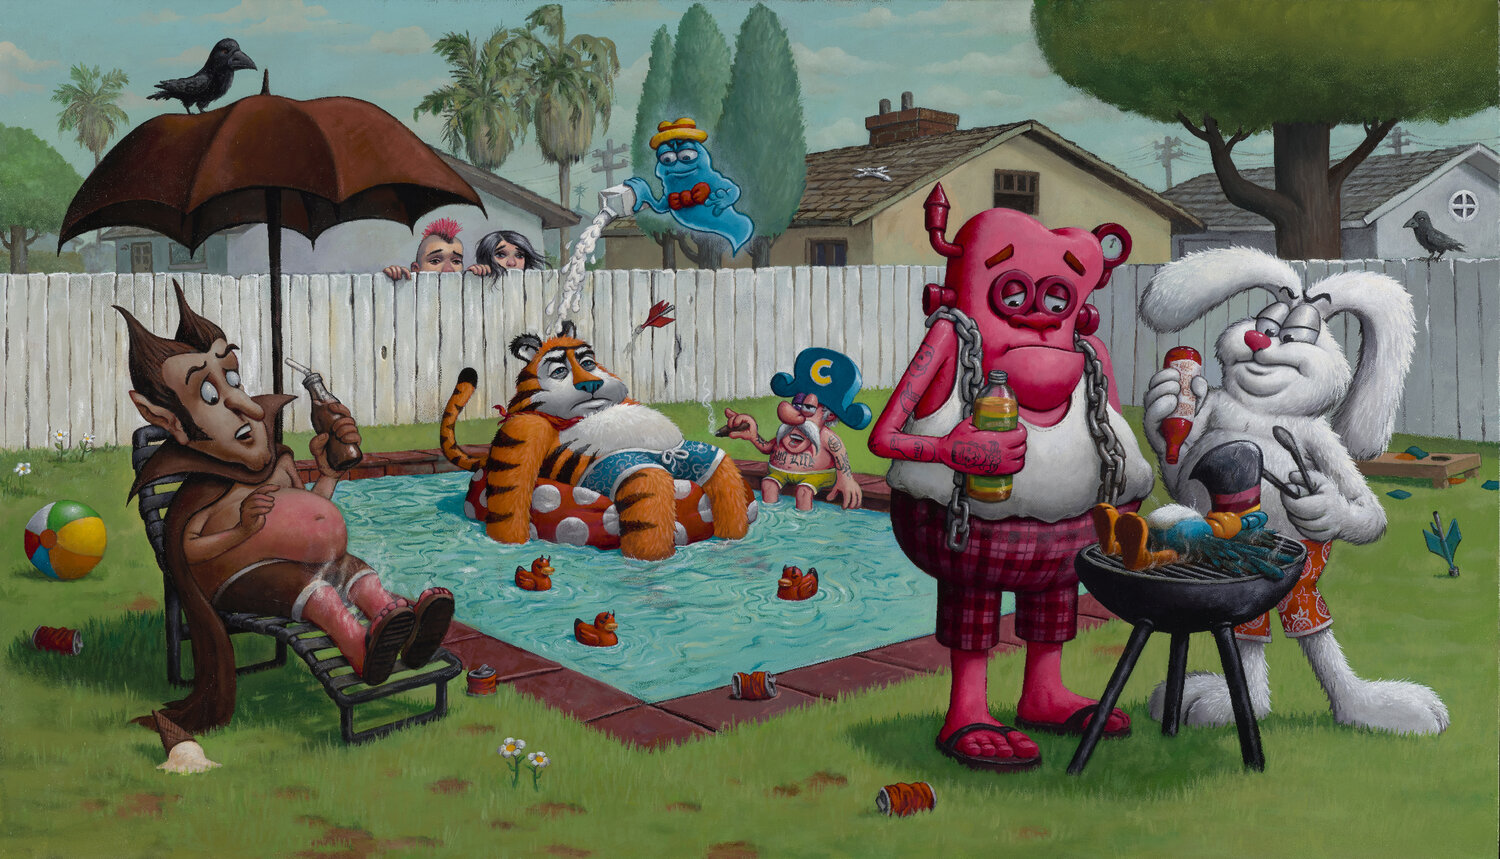 Sweet Day Poolside - Limited Edition Print by Bob Dob